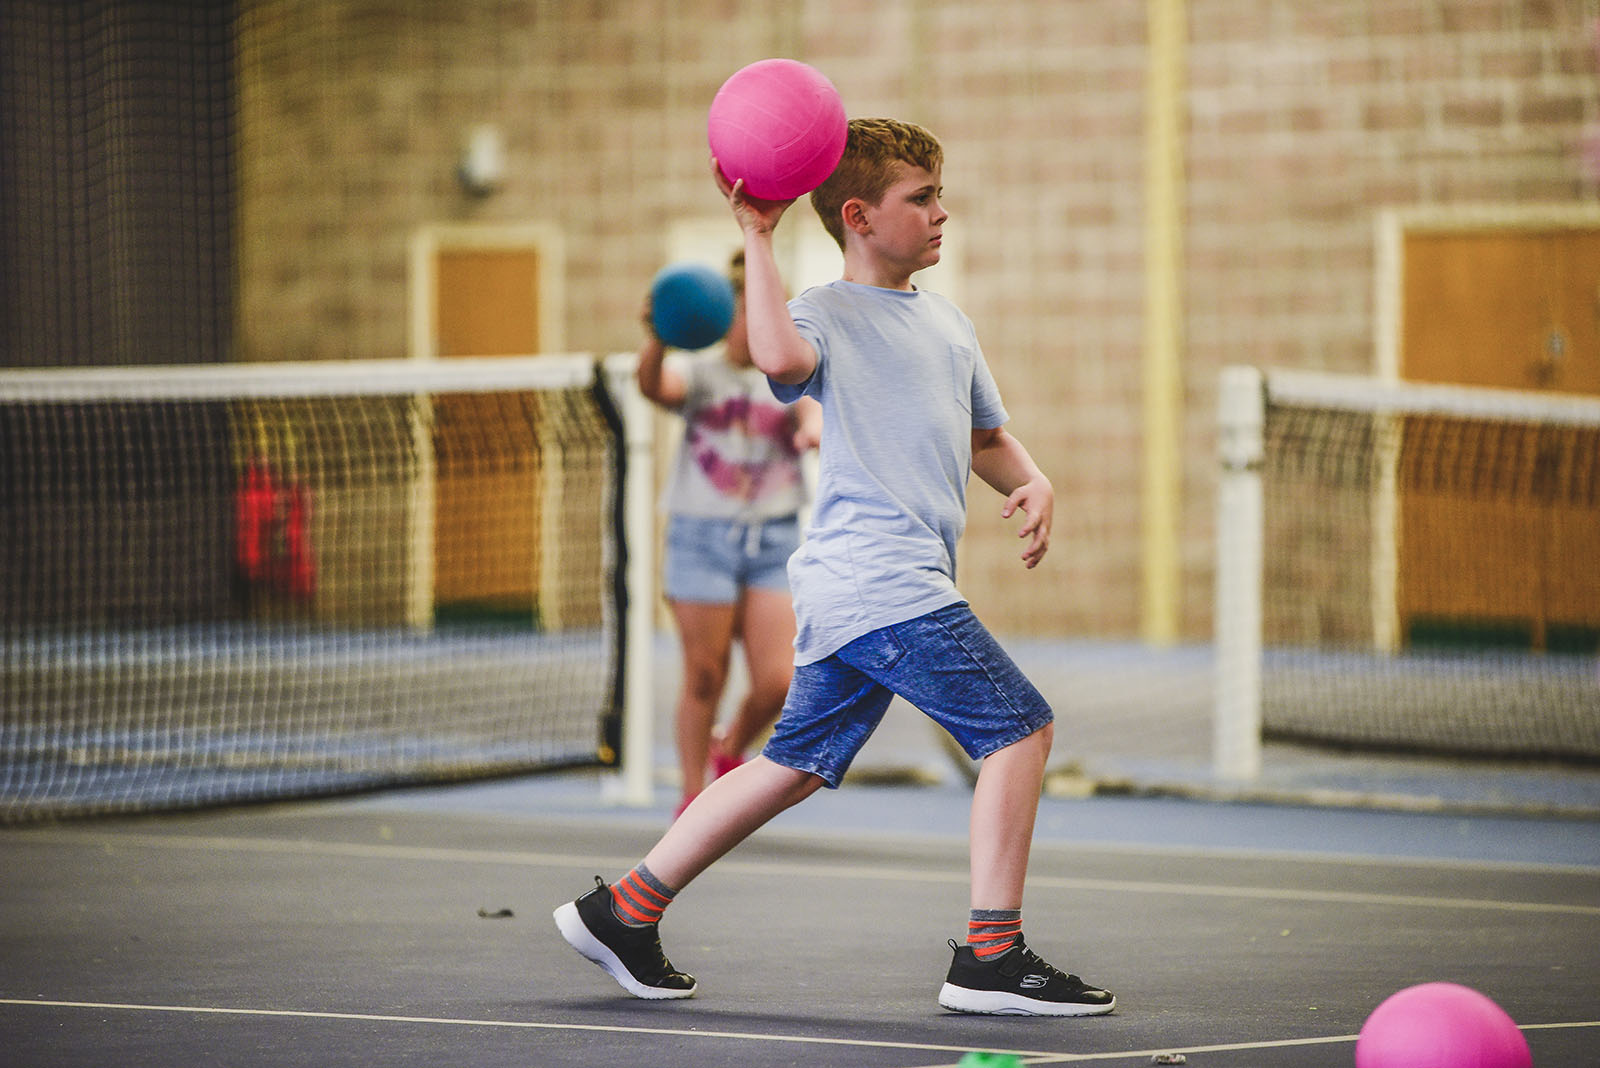 a young boy throwing a dodgeball